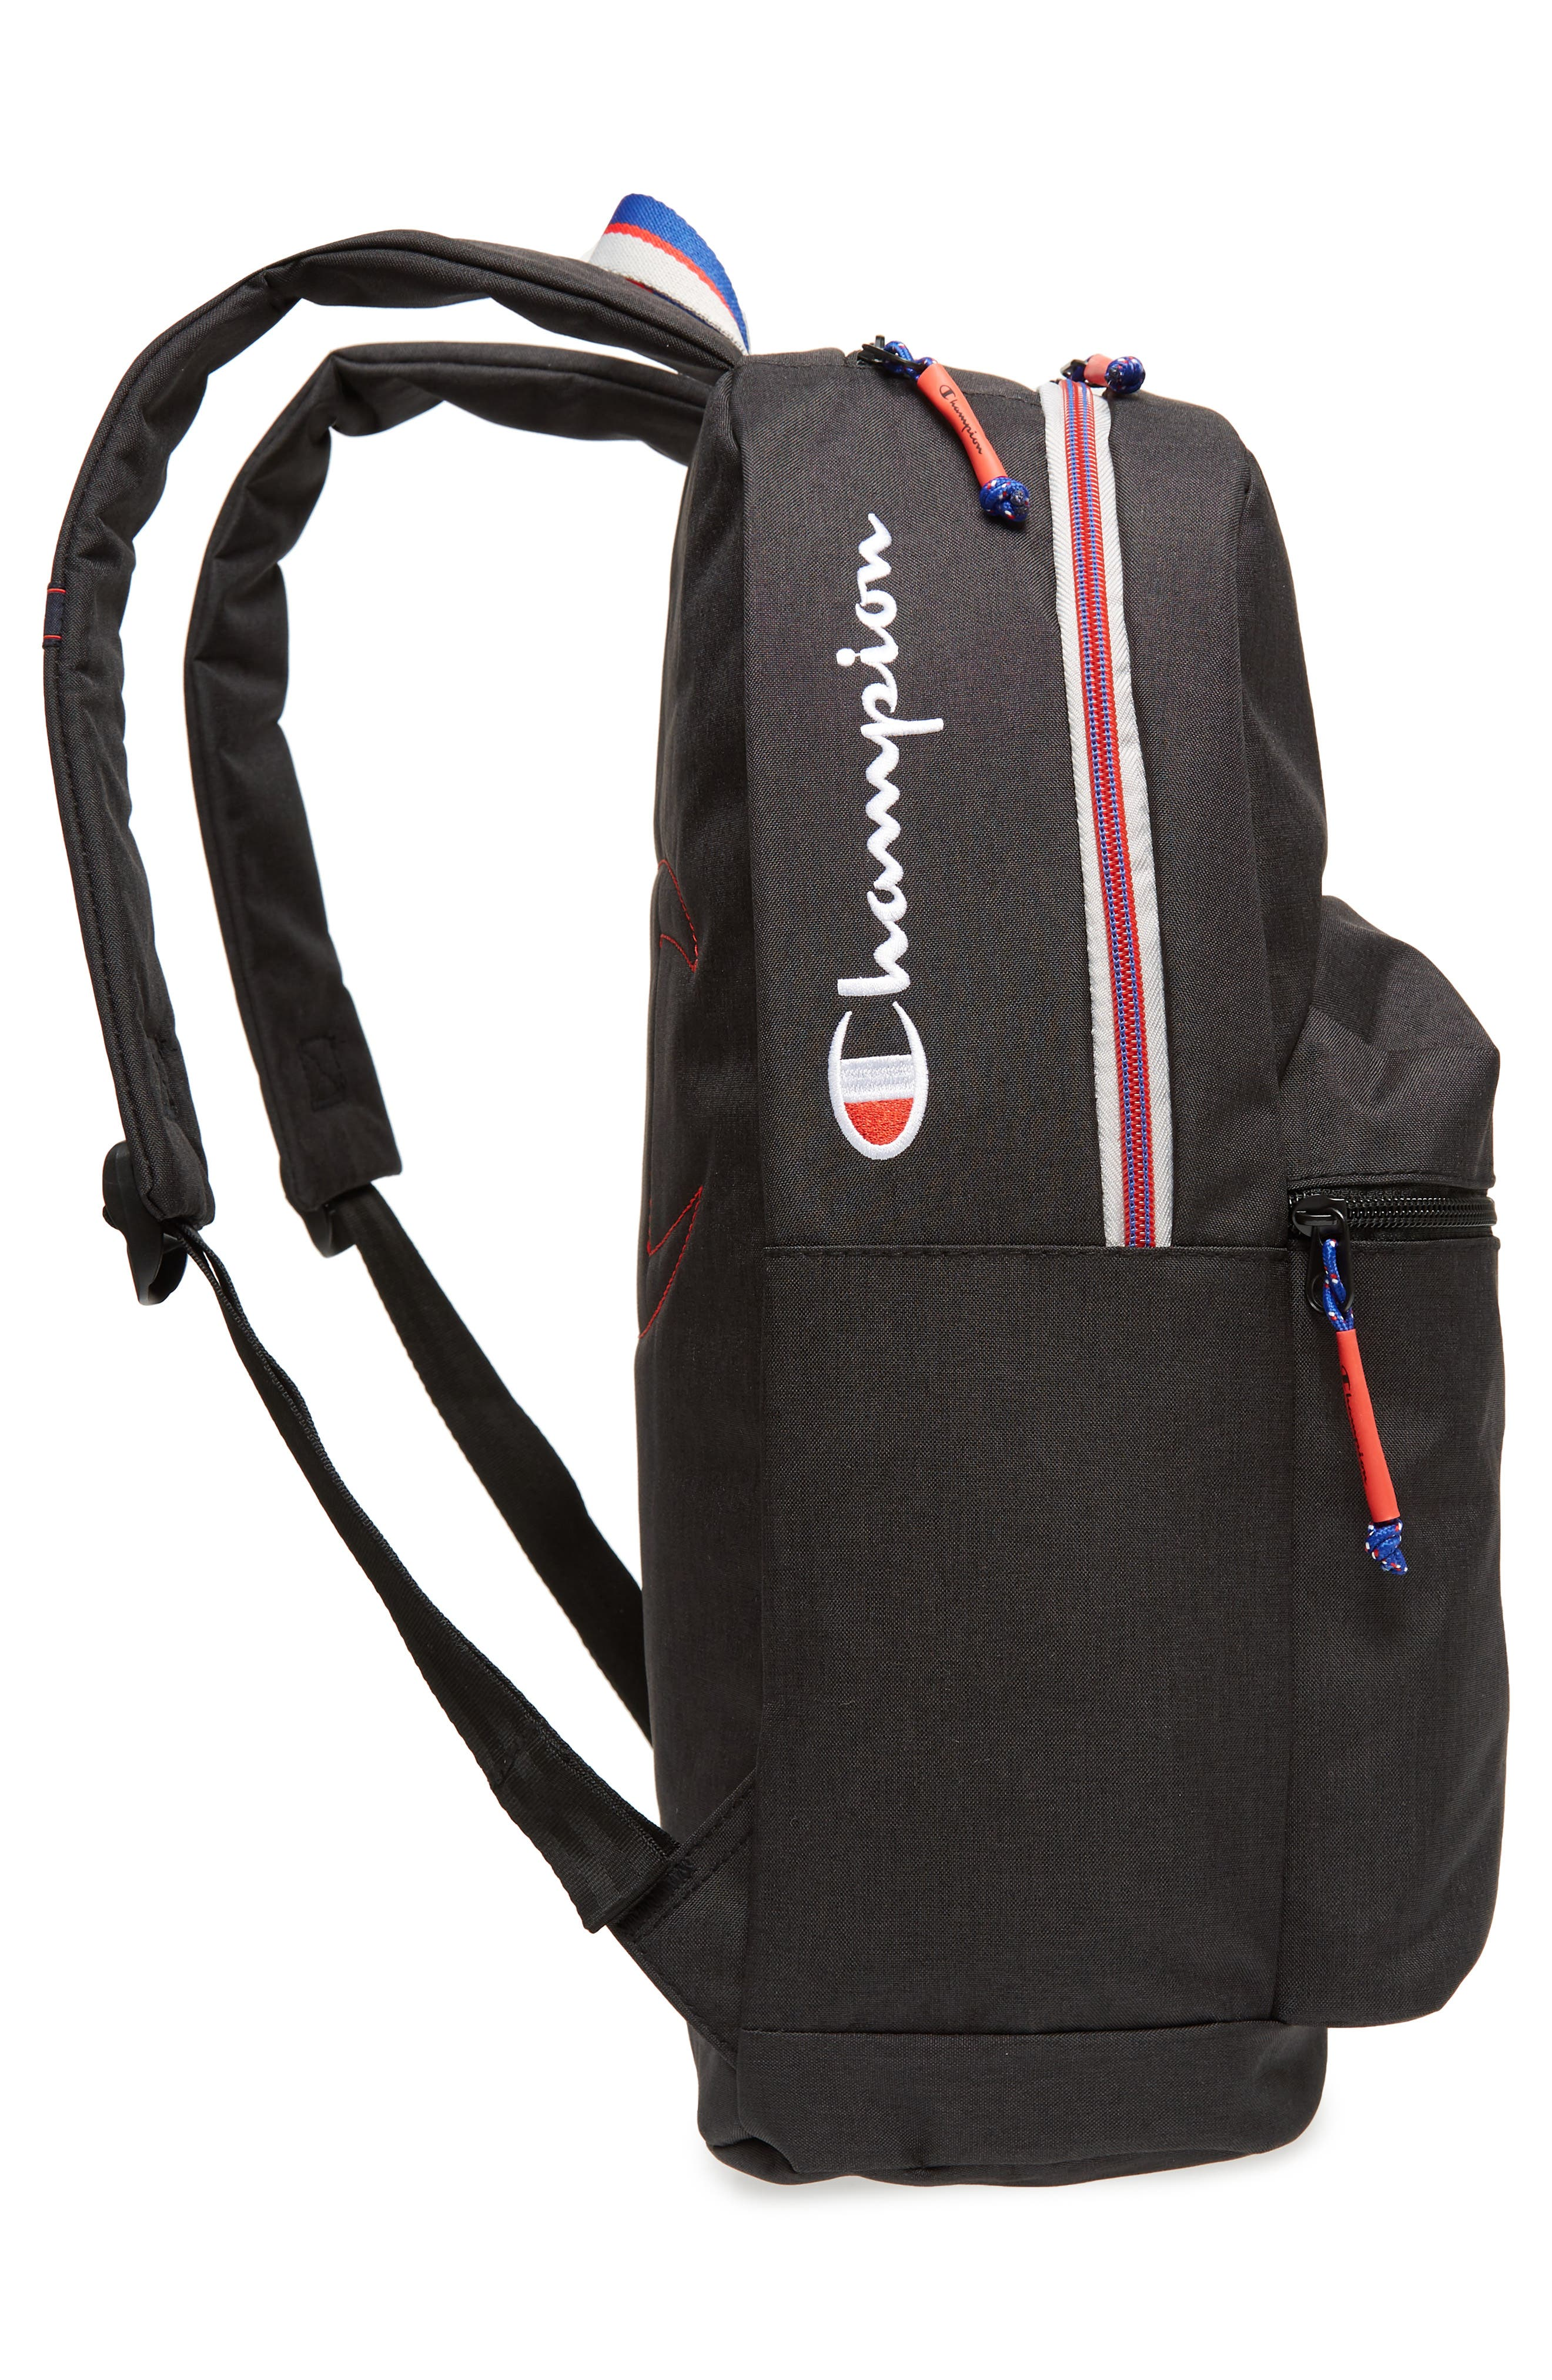 Supercize Backpack,                             Alternate thumbnail 5, color,                             BLACK HEATHER